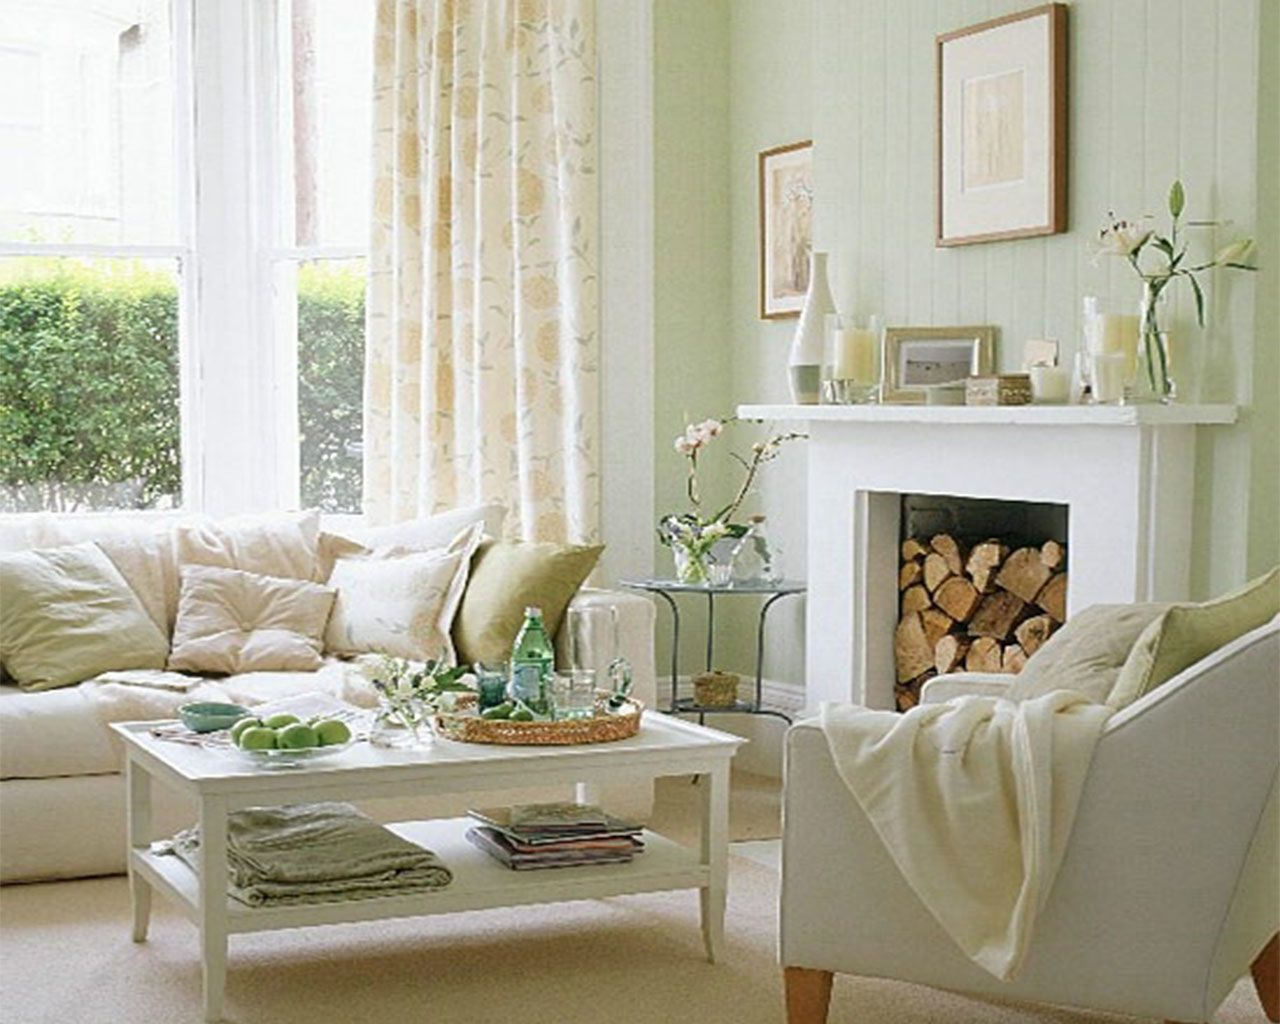 Creamy White Living Room With Accents Of Very Light Green